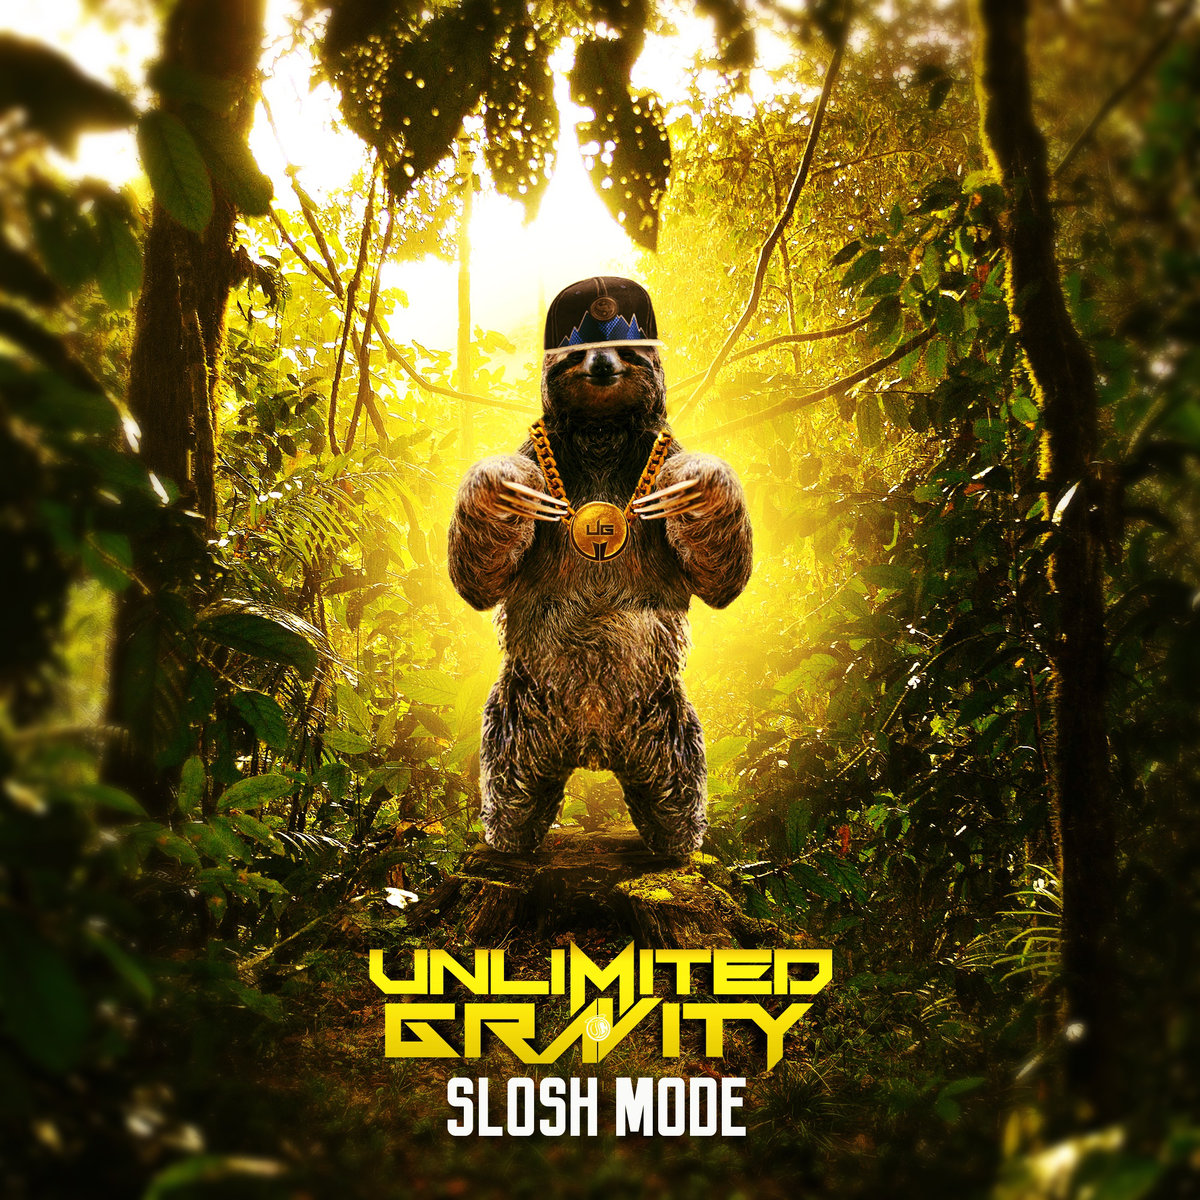 Unlimited Gravity - Life Support @ 'Slosh Mode' album (Austin)